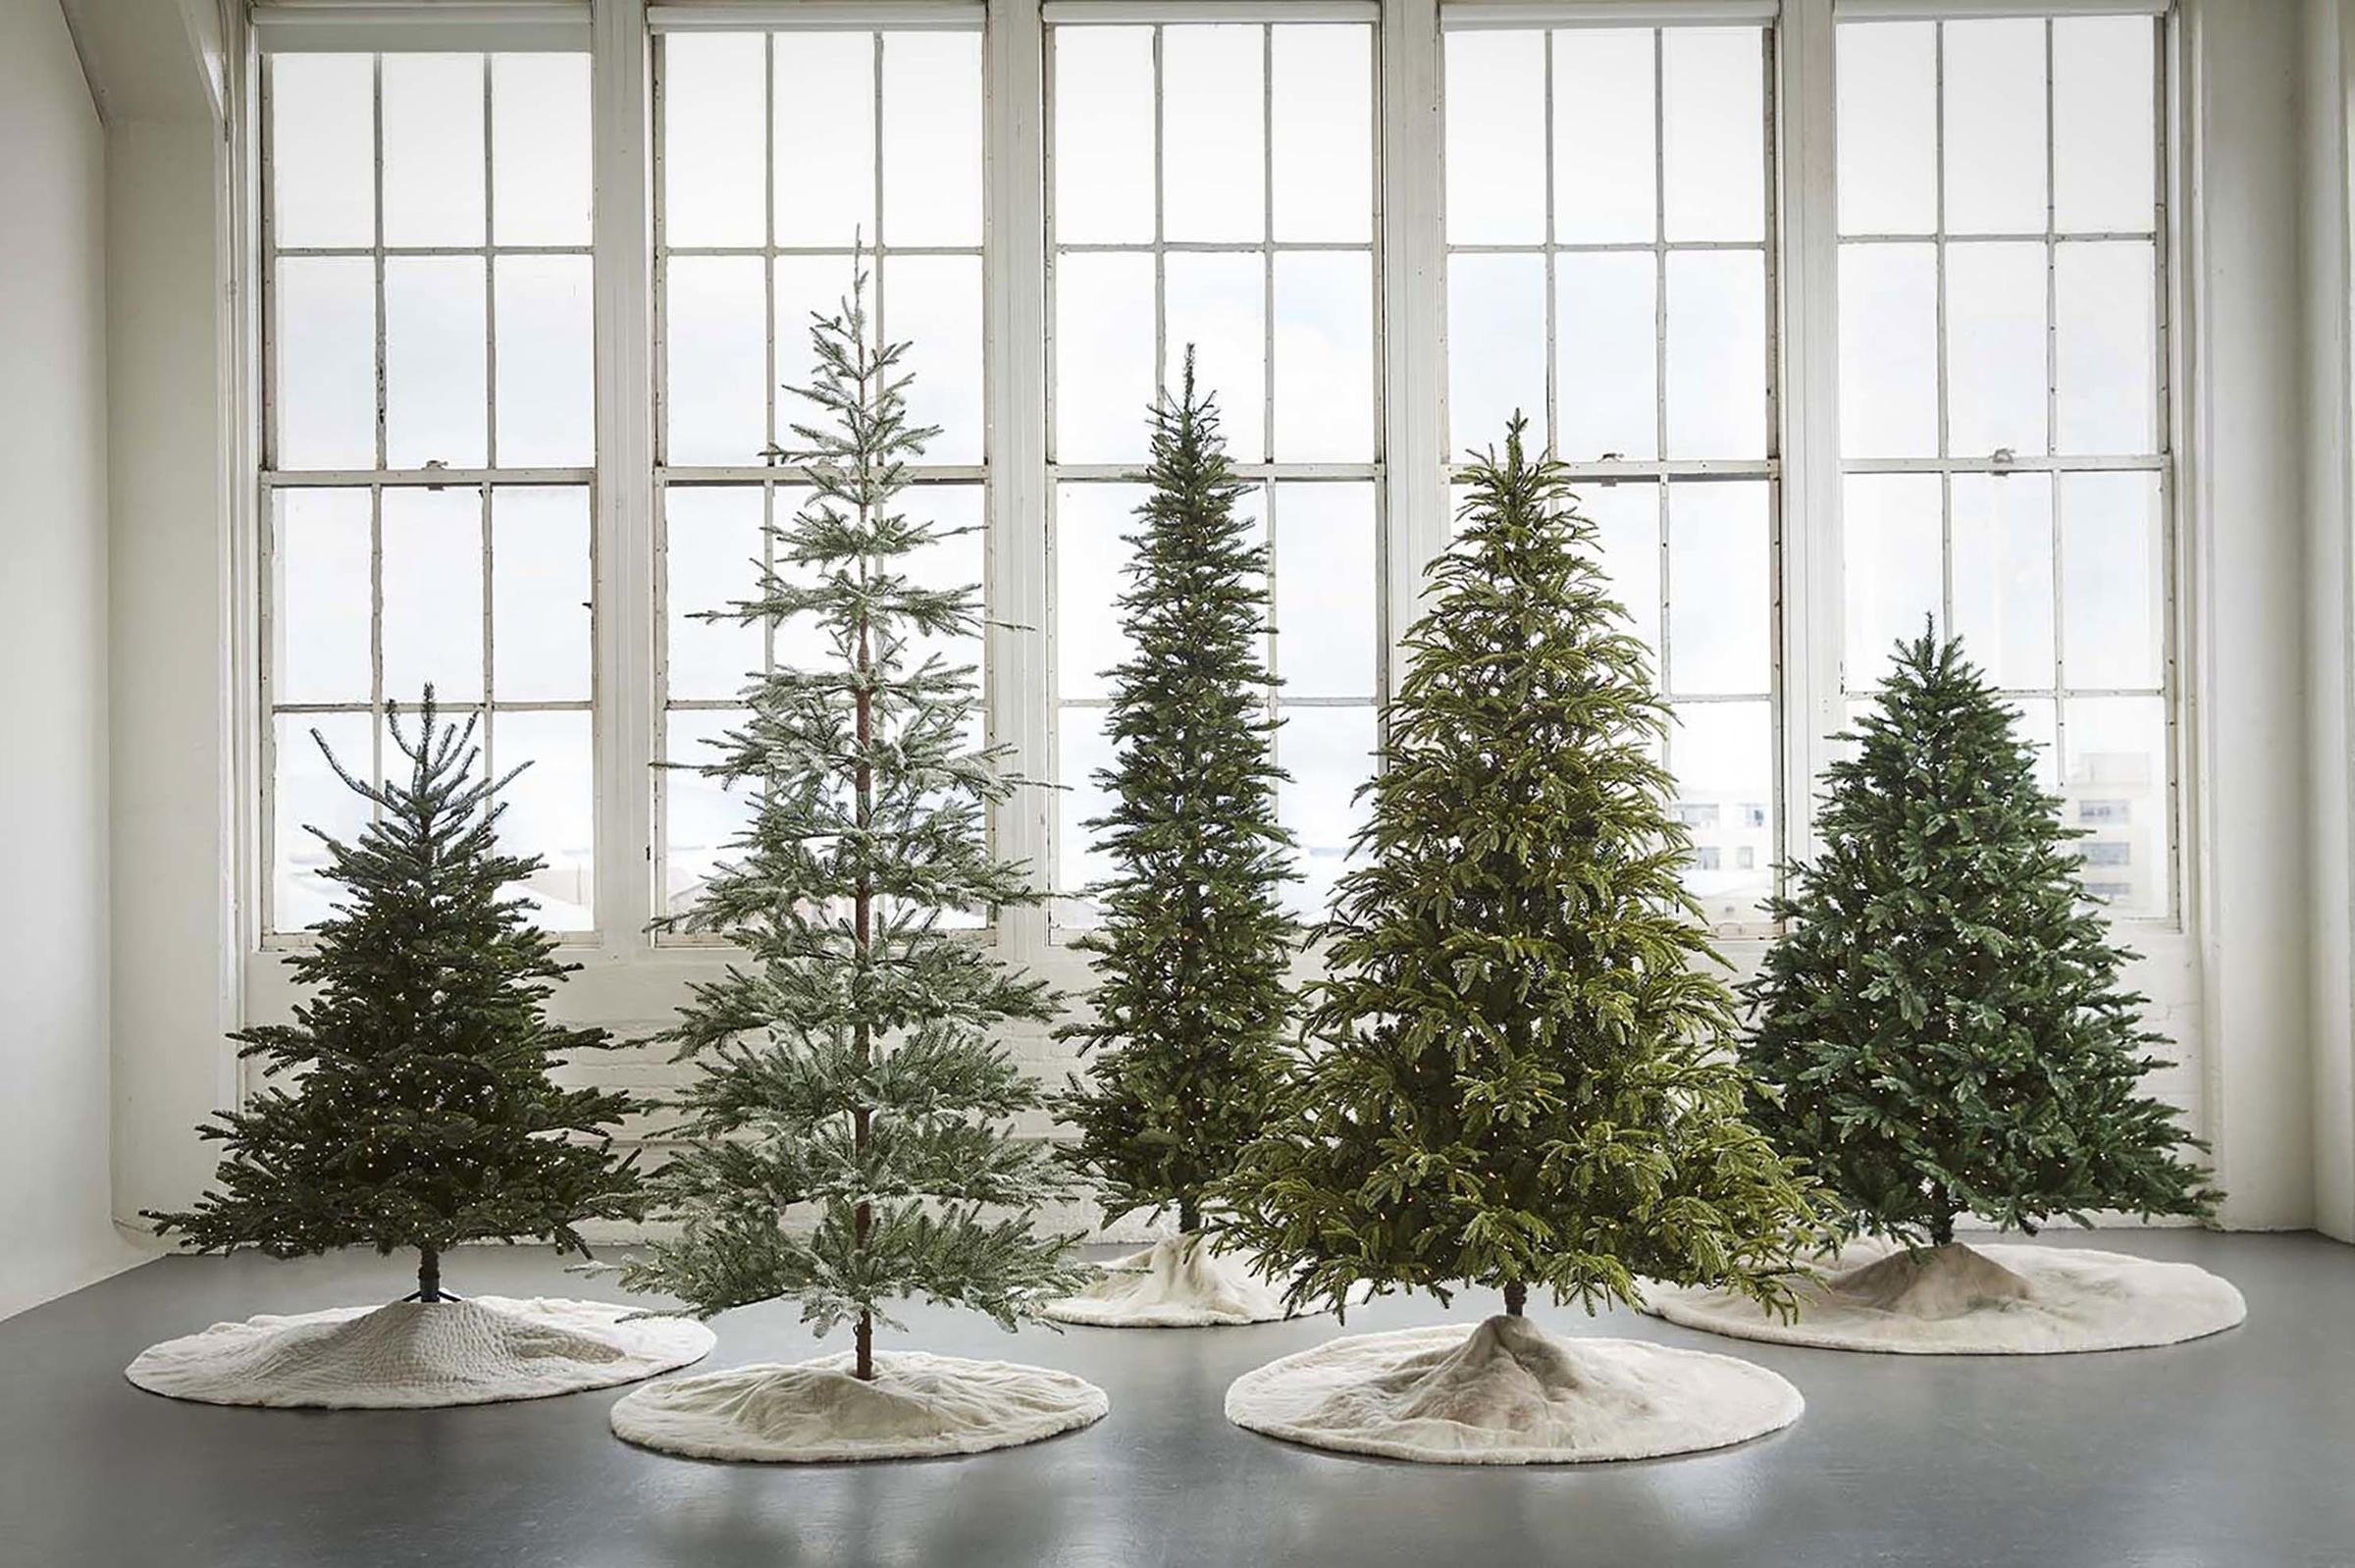 The American Christmas Tree Association, which represents manufacturers and retailers of real and artificial trees, is trying to highlight popular trends ...